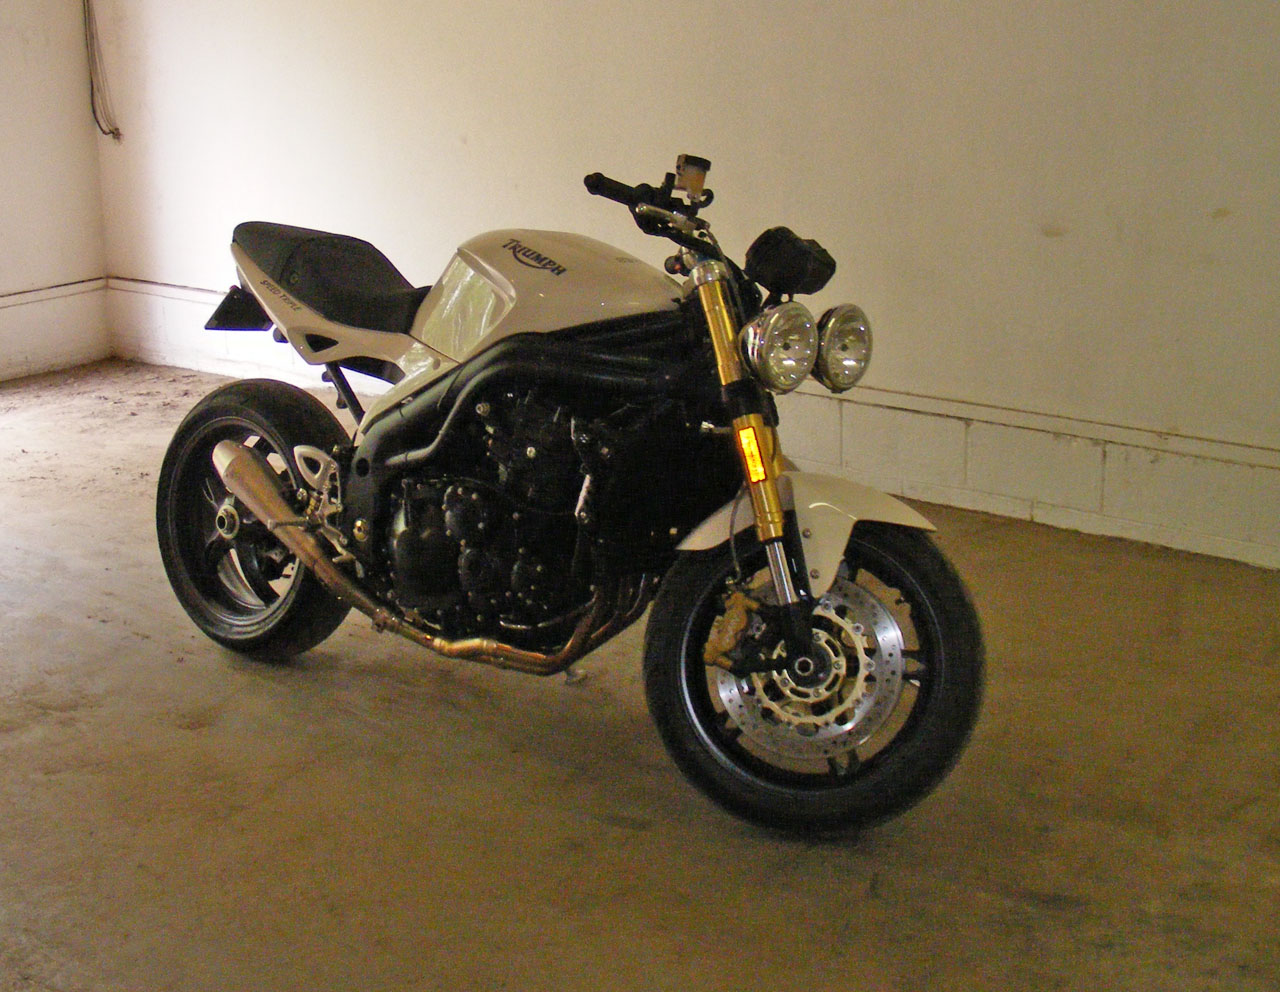 2007 Triumph Speed triple 1050 1/4 mile Drag Racing timeslip specs 0 ...